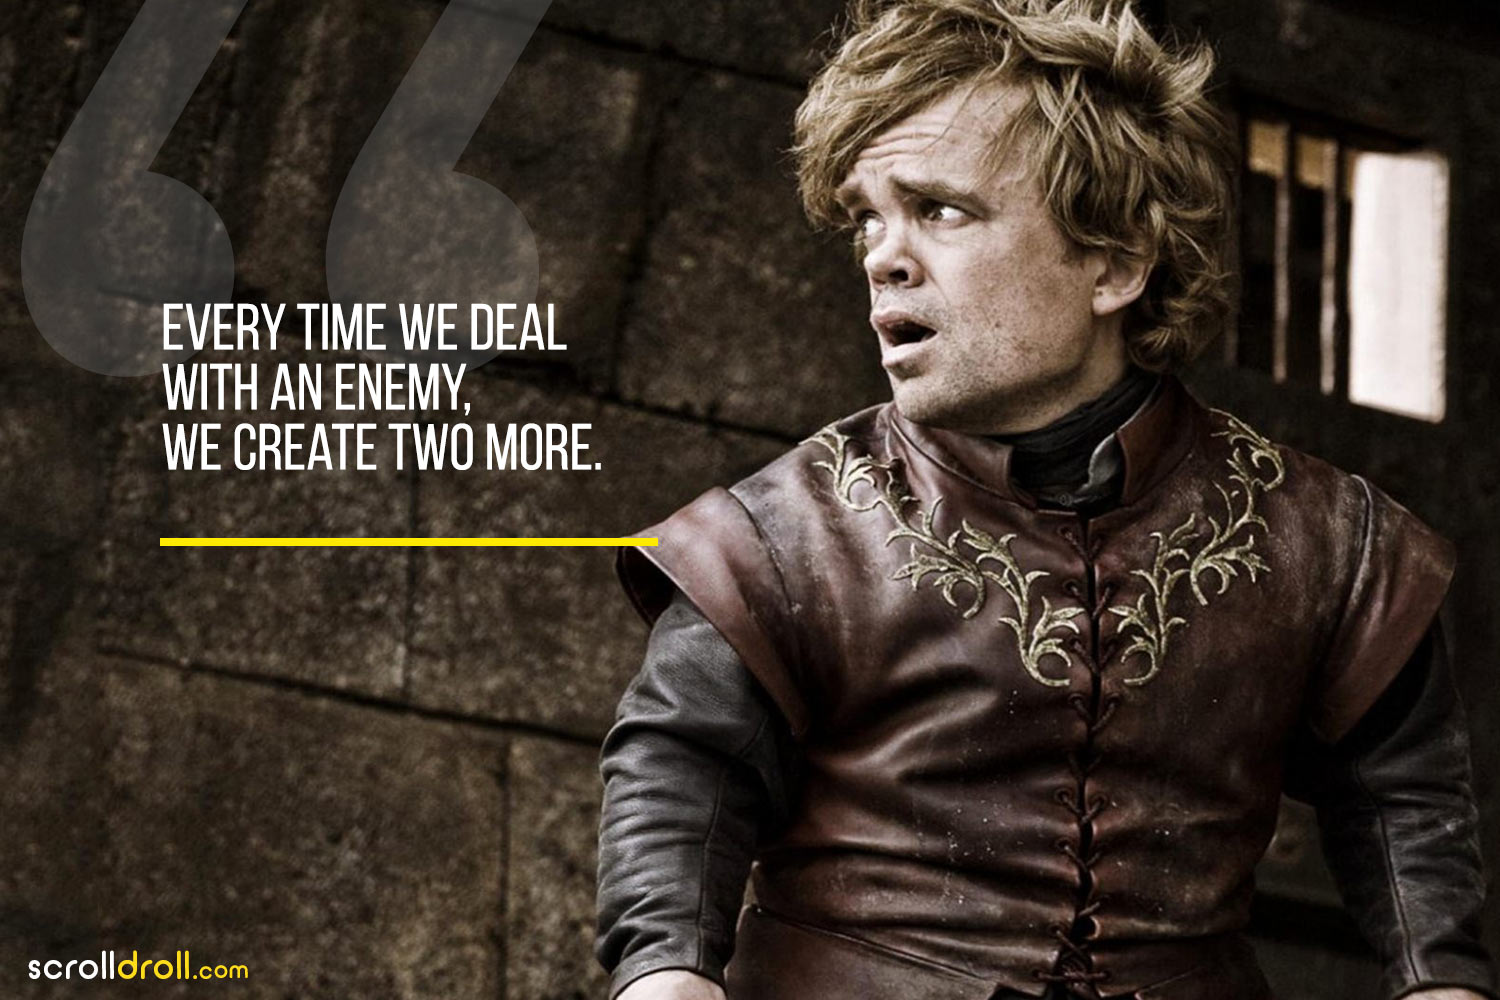 Tyrion-Every time we deal with an enemy,we create two more